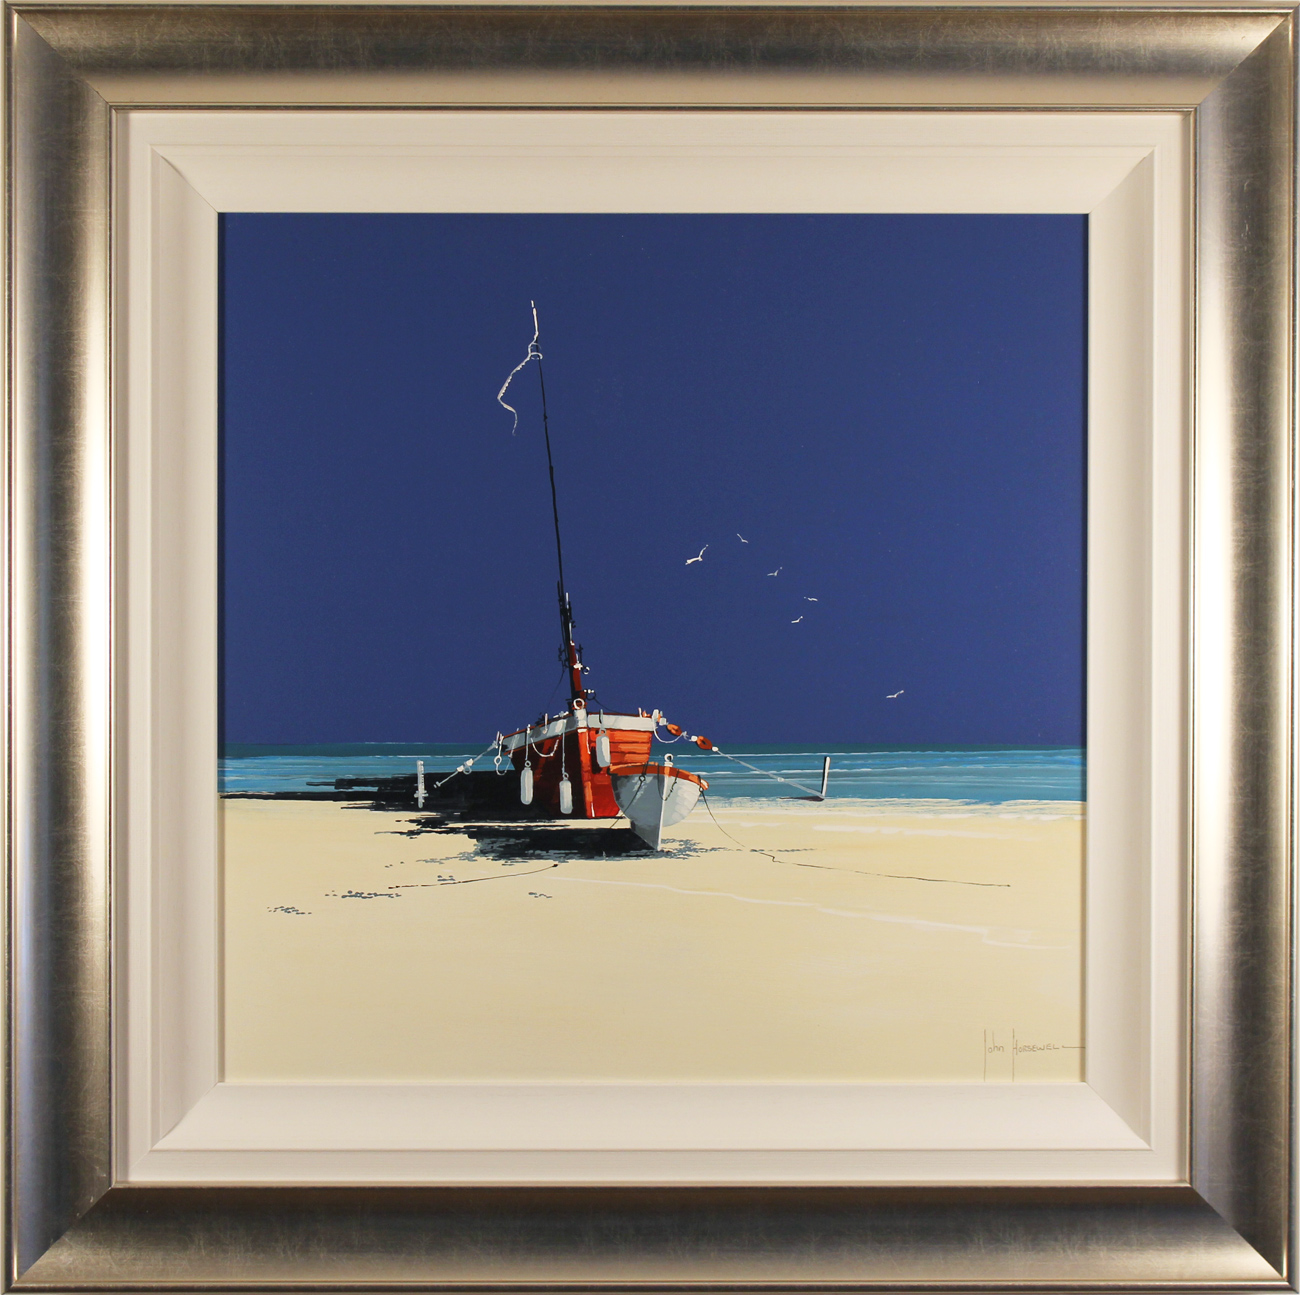 John Horsewell, Original oil painting on panel, The Castaways, click to enlarge